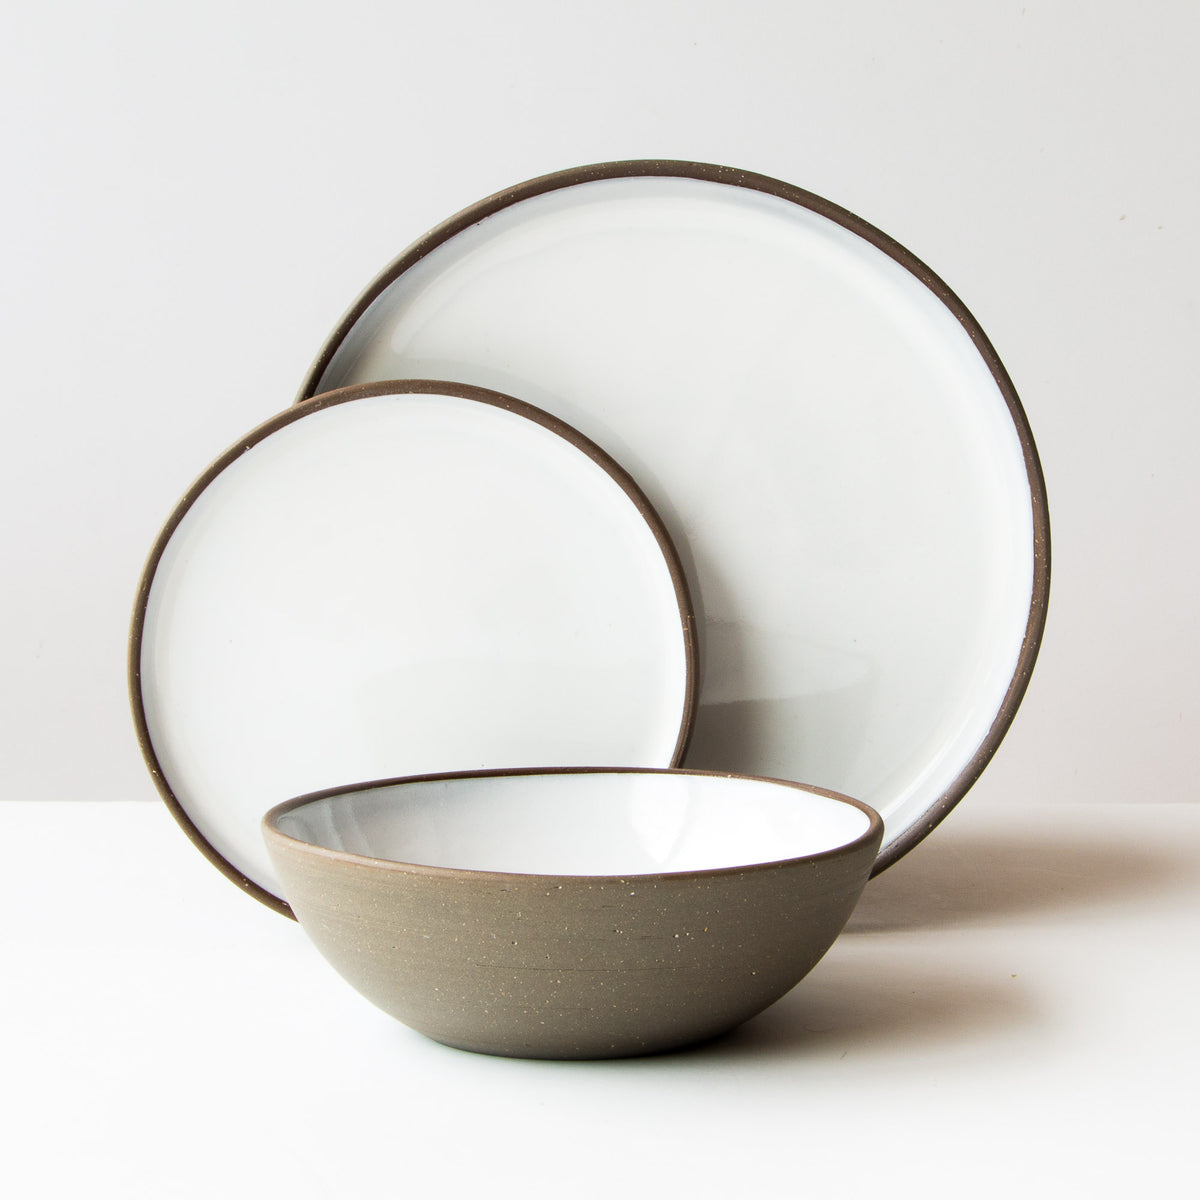 Grey Clay 3-Piece Handmade Pottery Dinnerware Set - Sold by Chic & Basta